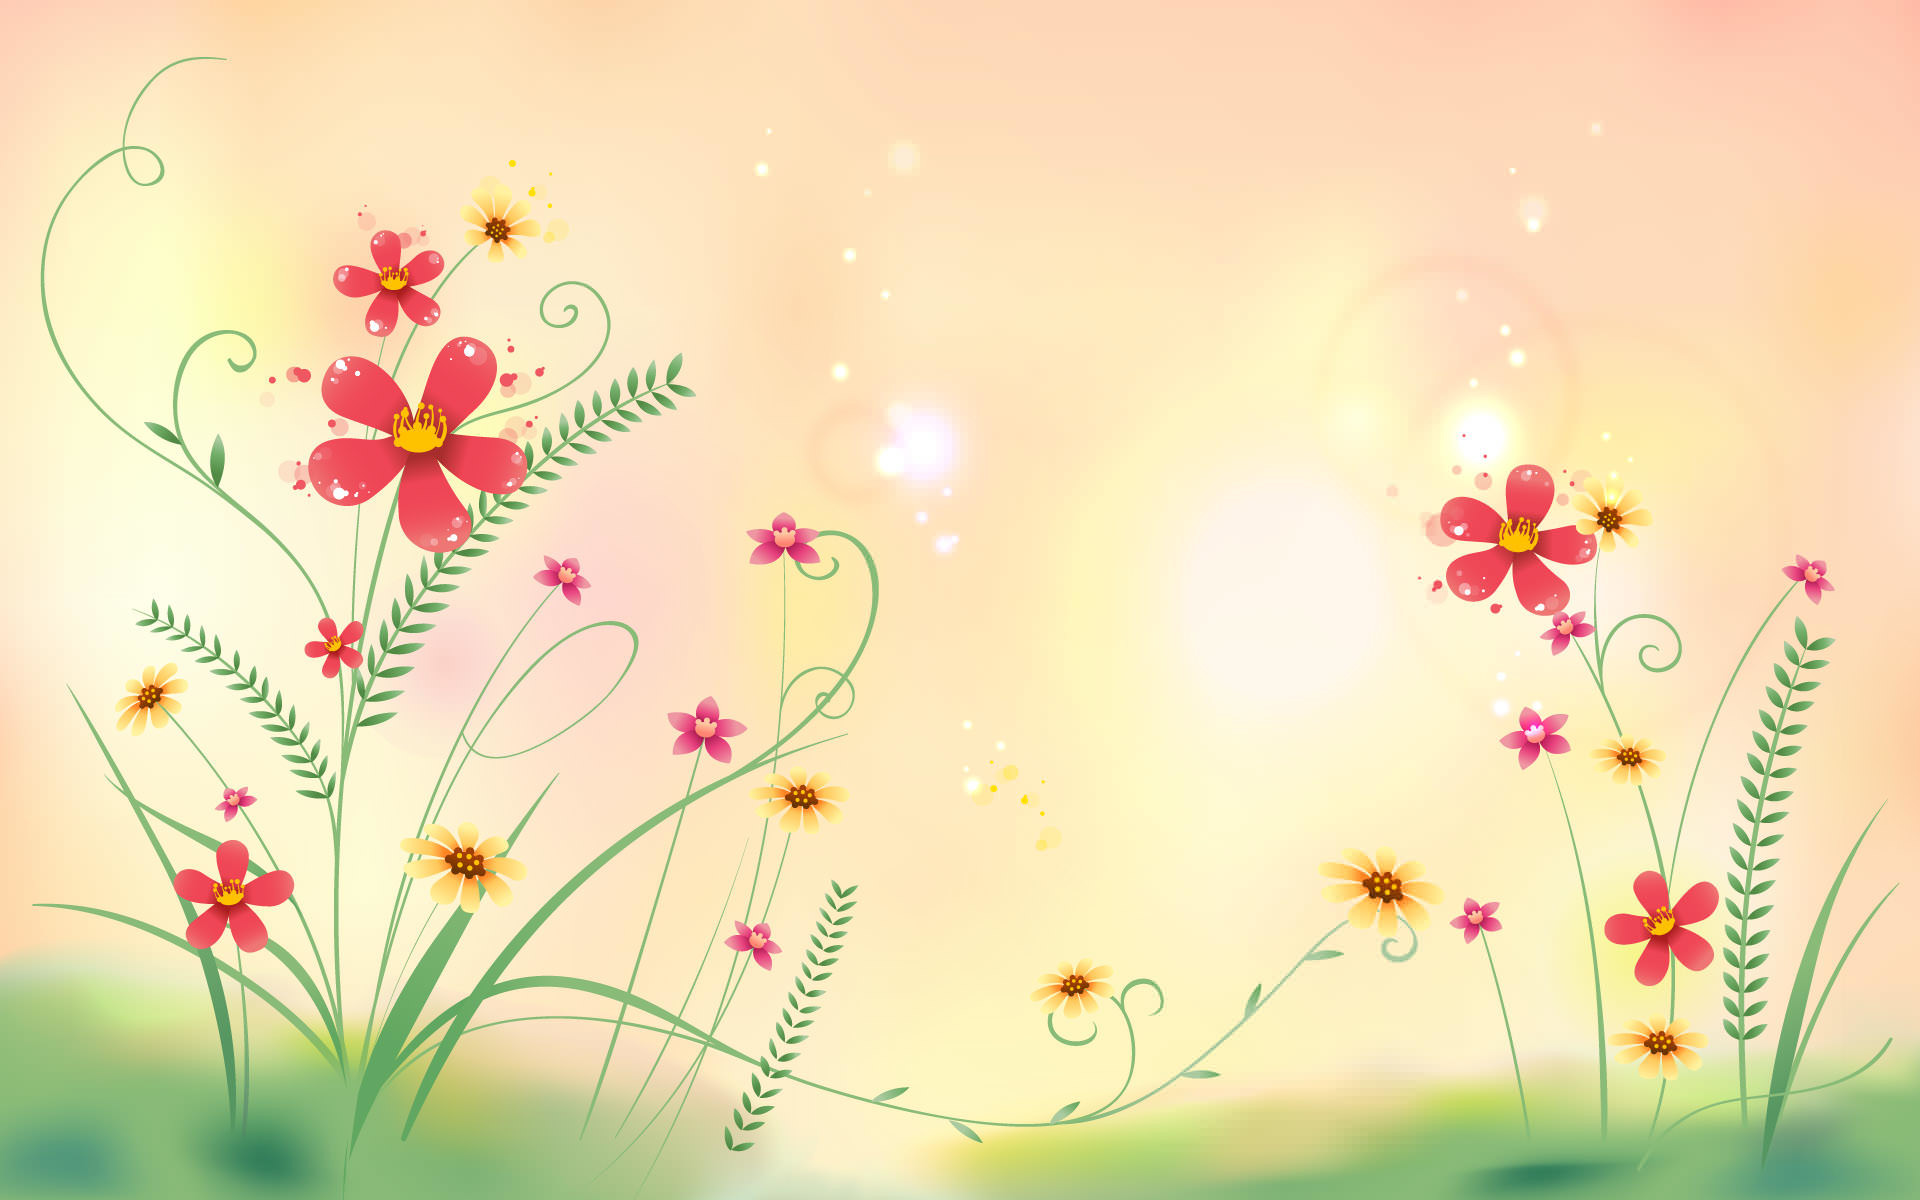 Abstract Flowers Wallpaper 66 Images